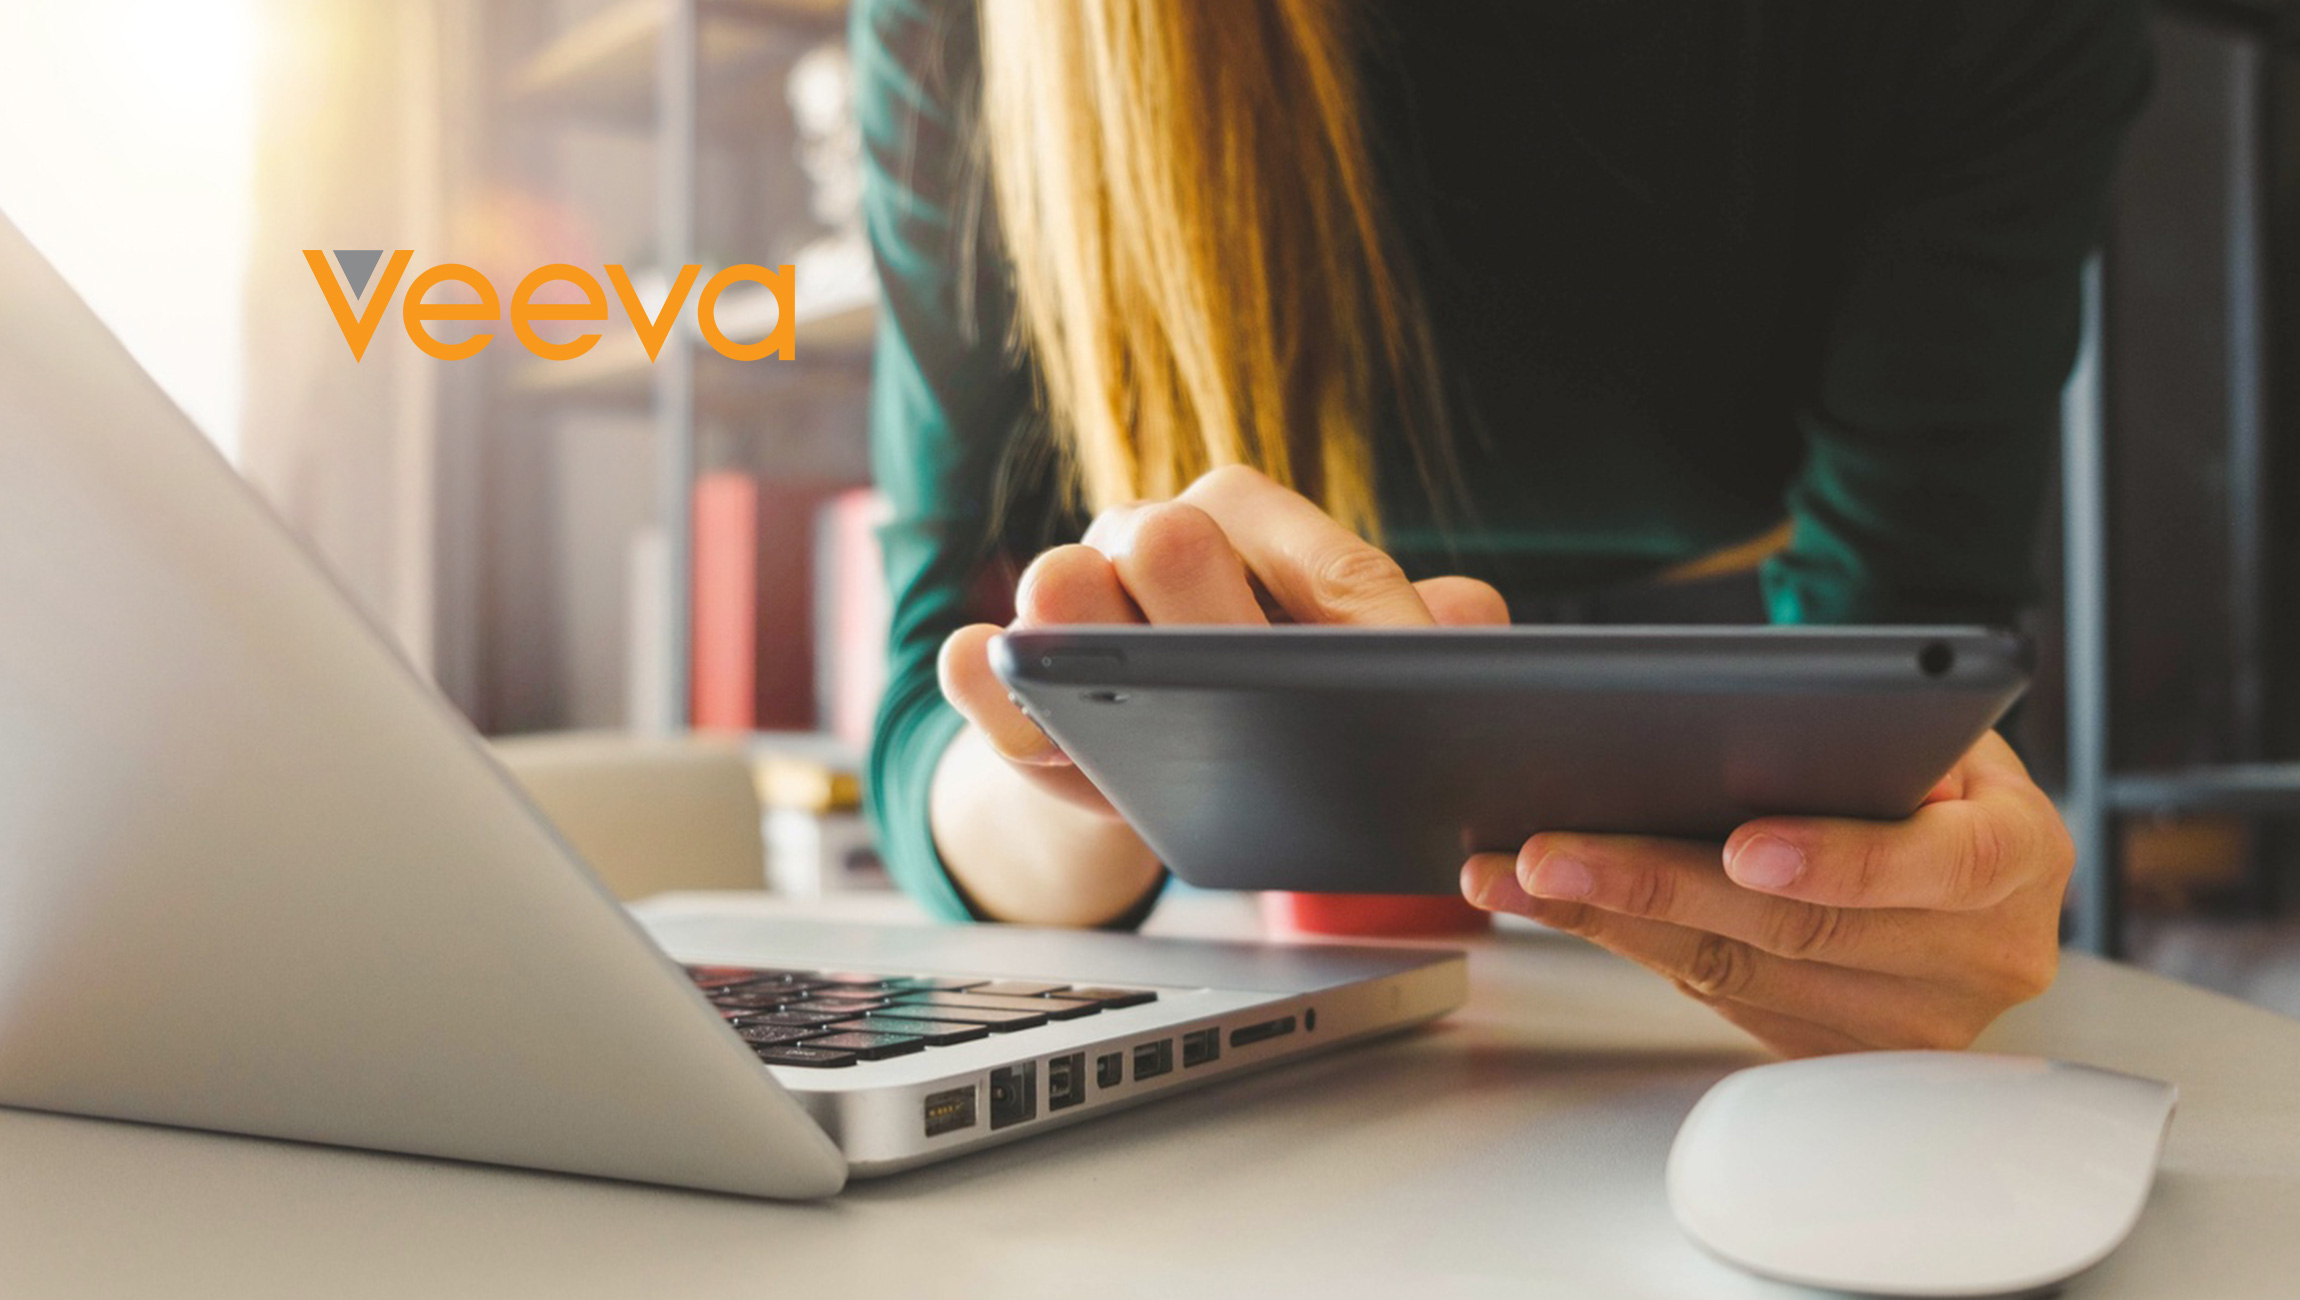 Veeva Launches Modular Content Solution to Help Companies Speed Delivery of Digital Content at Scale